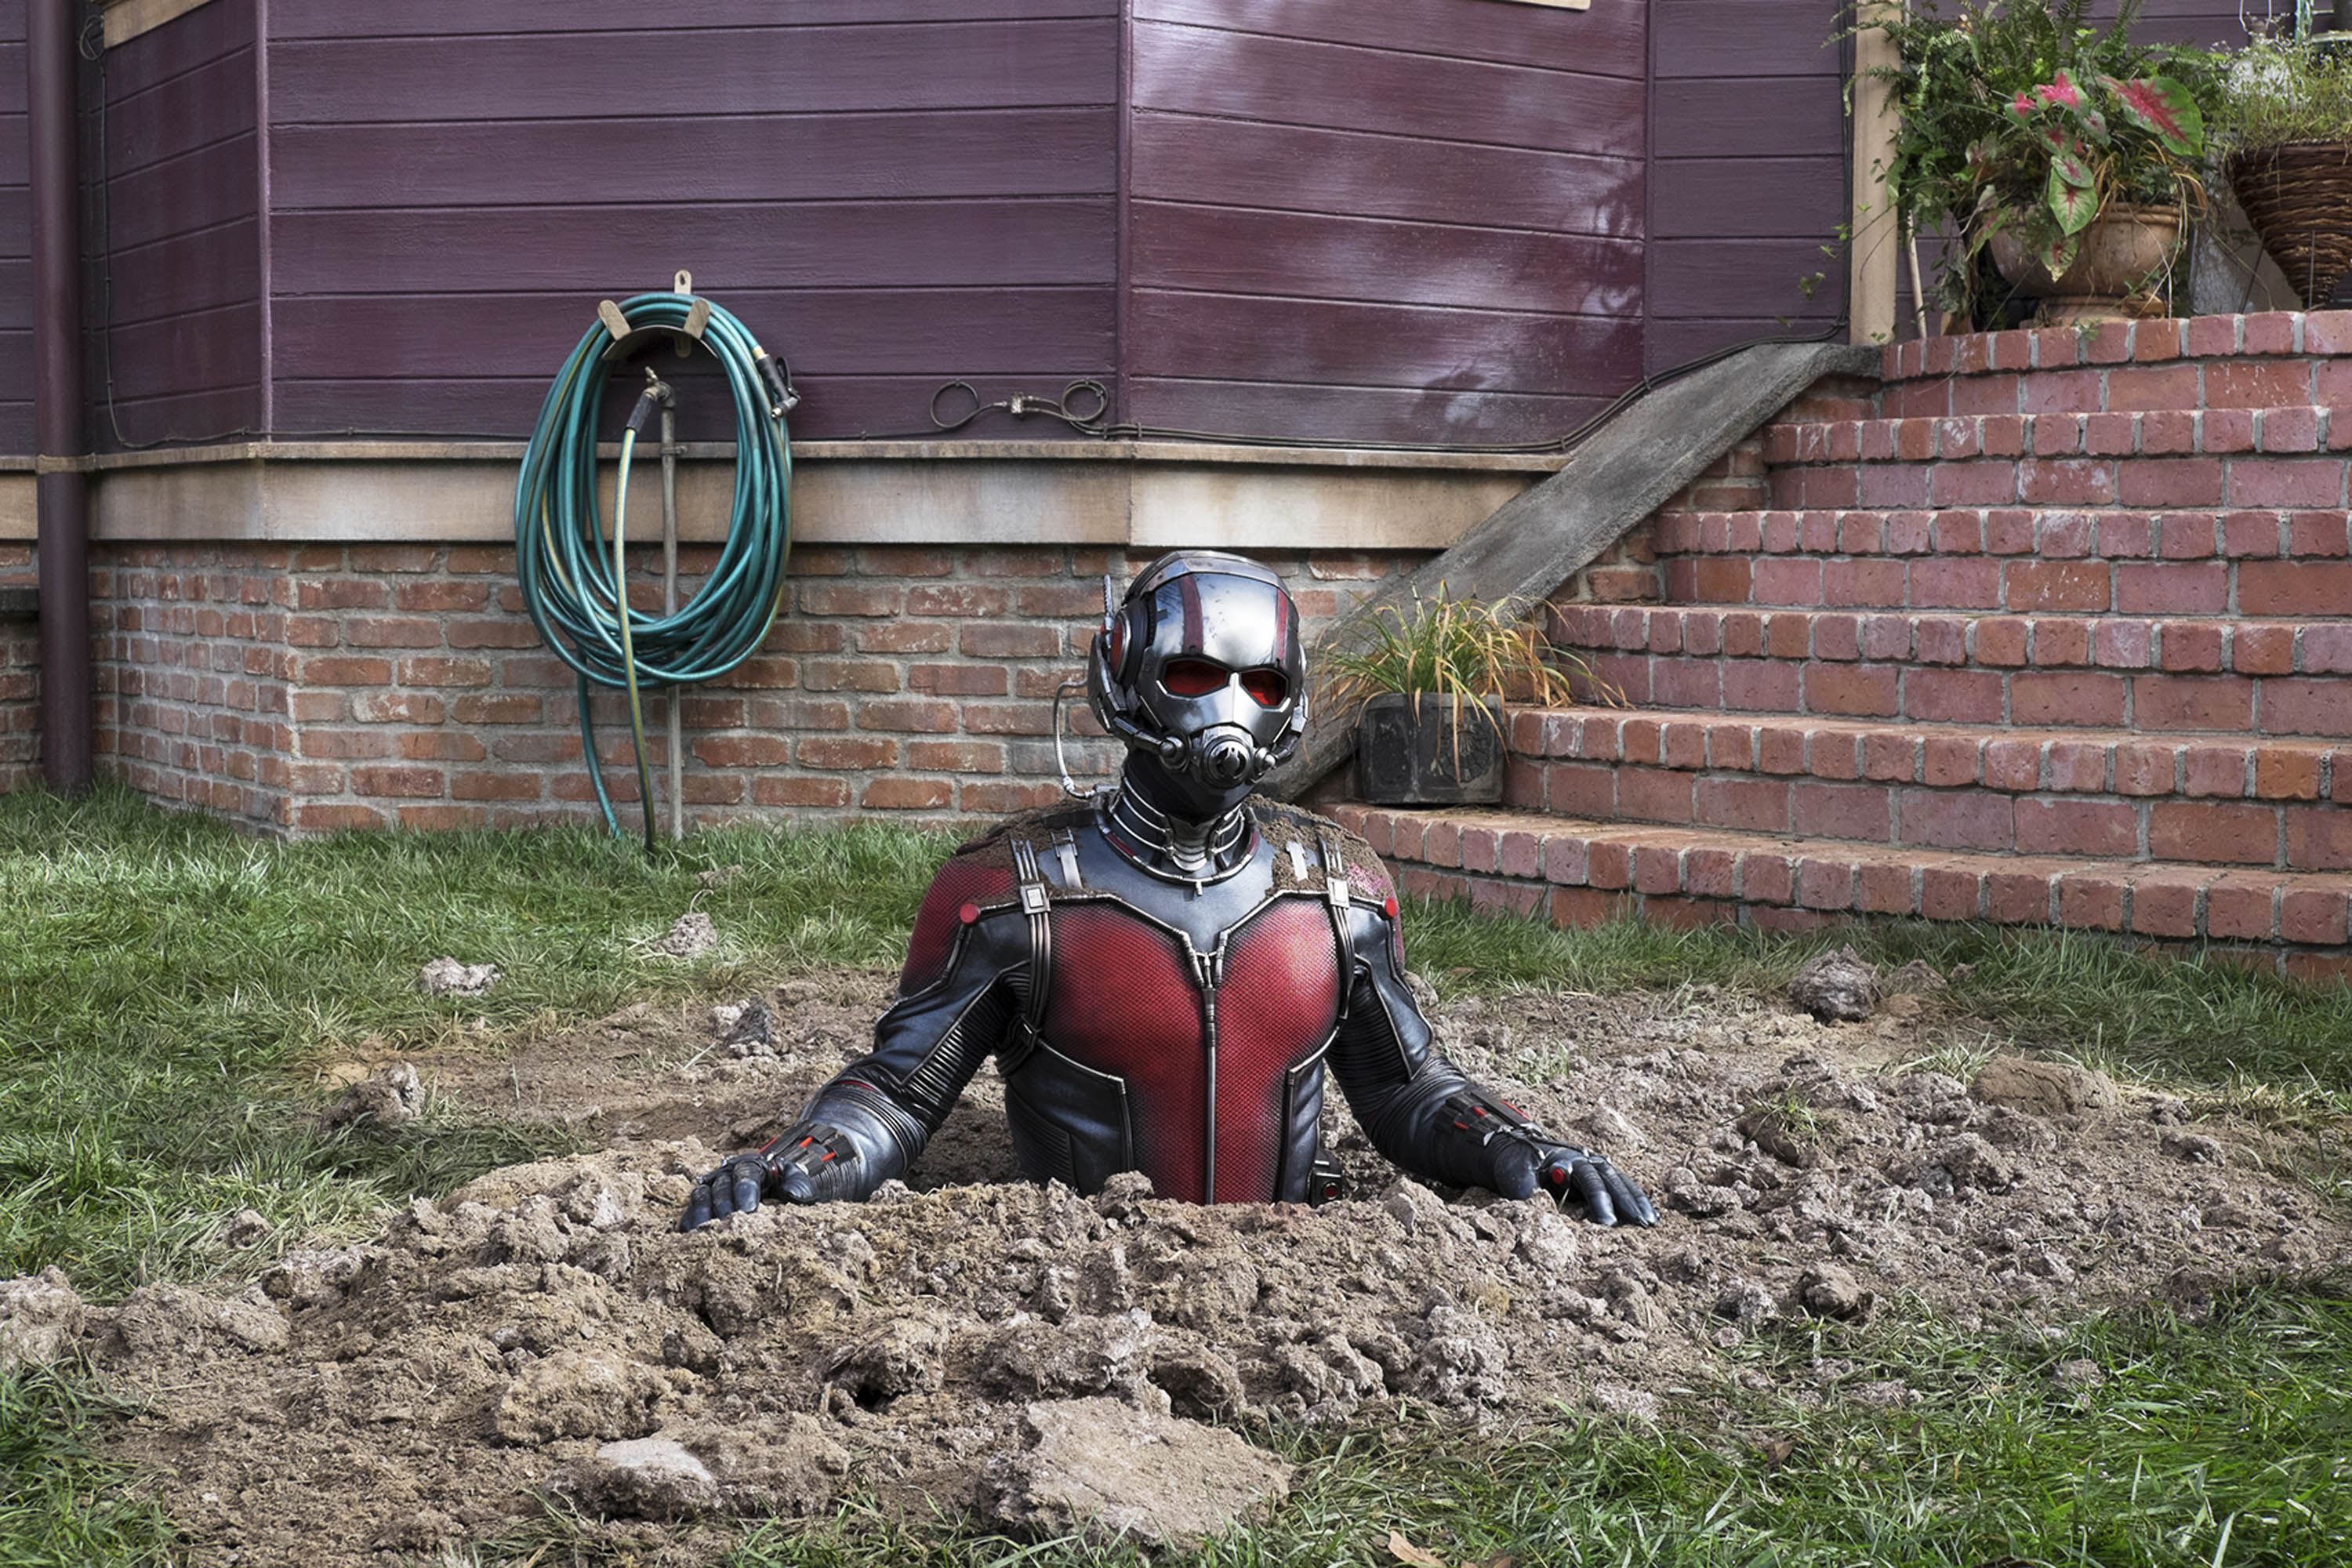 As its least noble superhero, Paul Rudd's Ant-Man brings warmth and pathos to the Marvel universe.